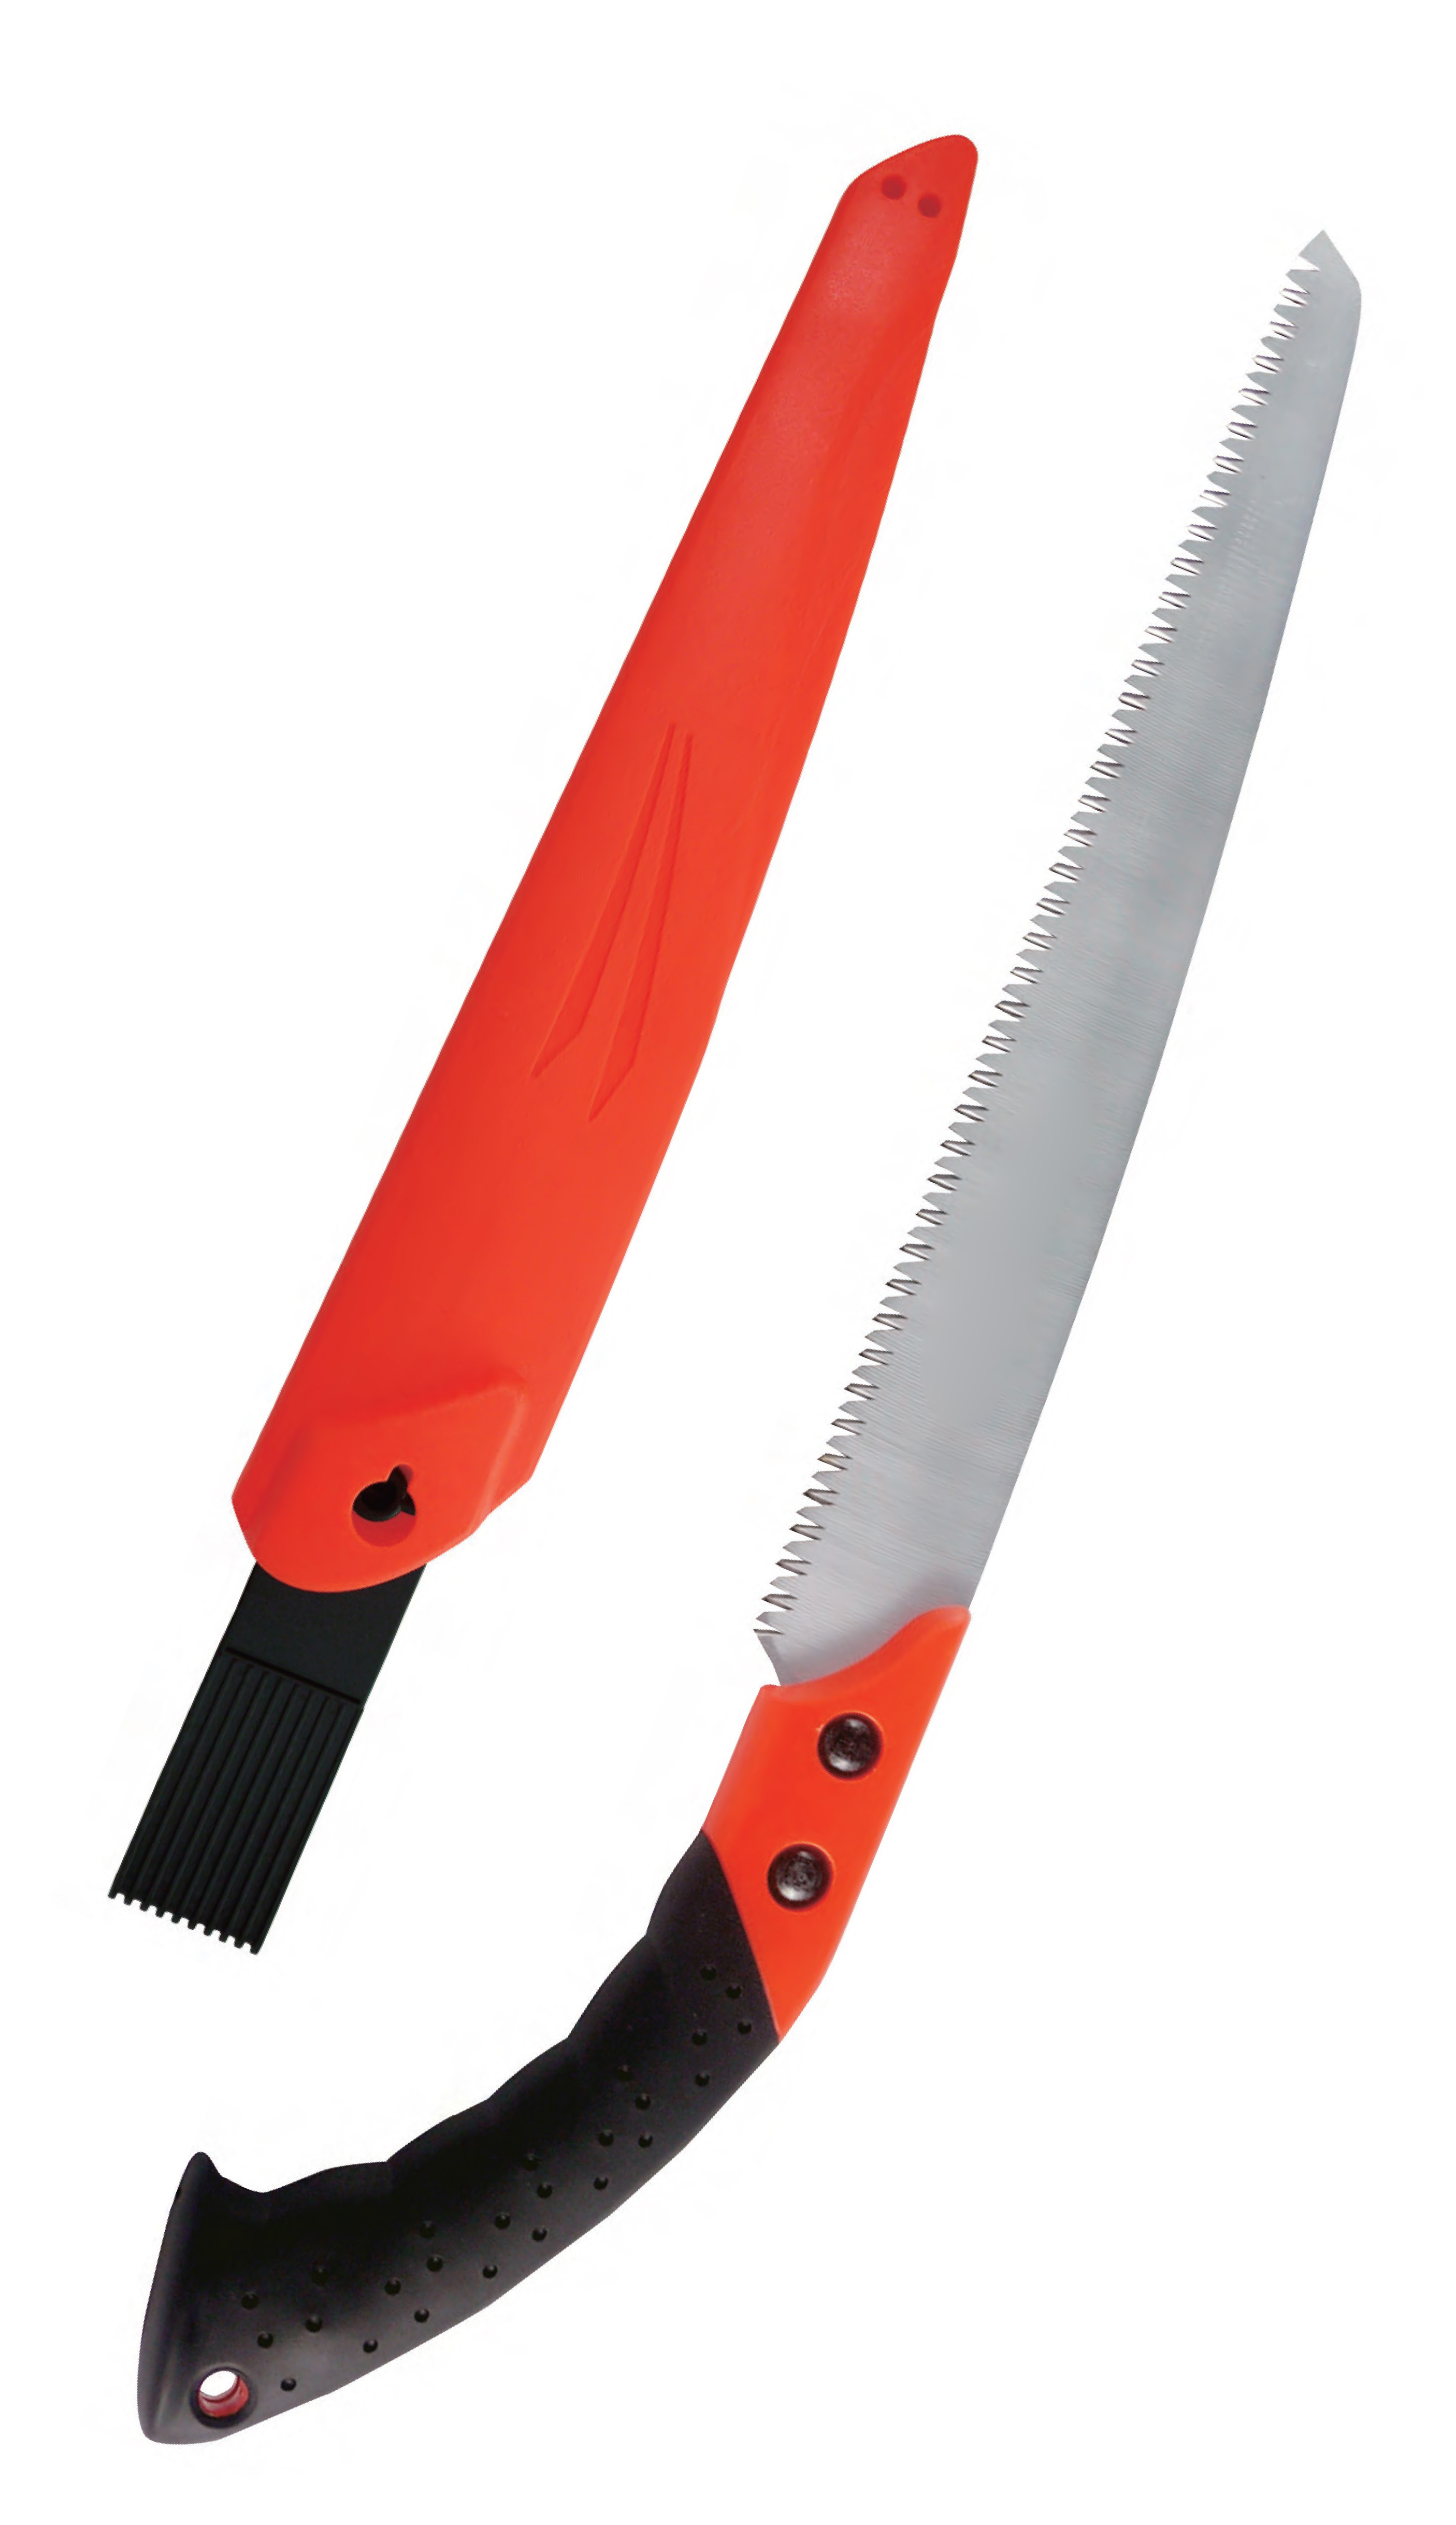 Zenport Saw S250 10 inch Straight Blade w/Sheath